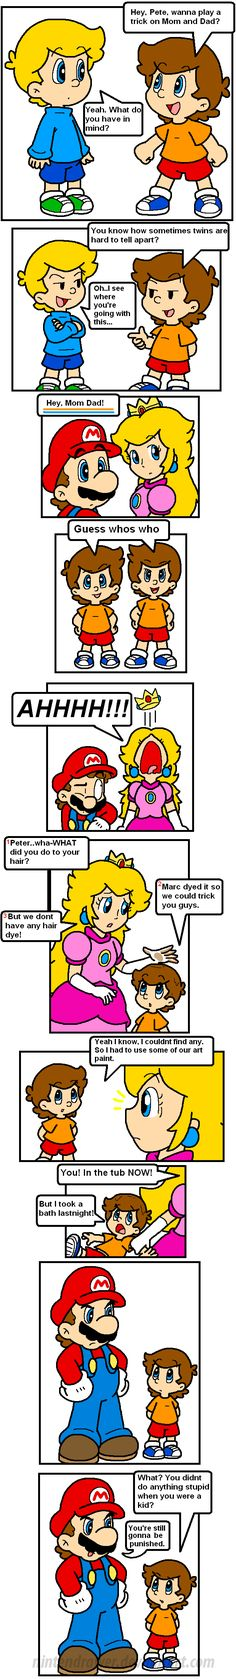 whos who? by Nintendrawer